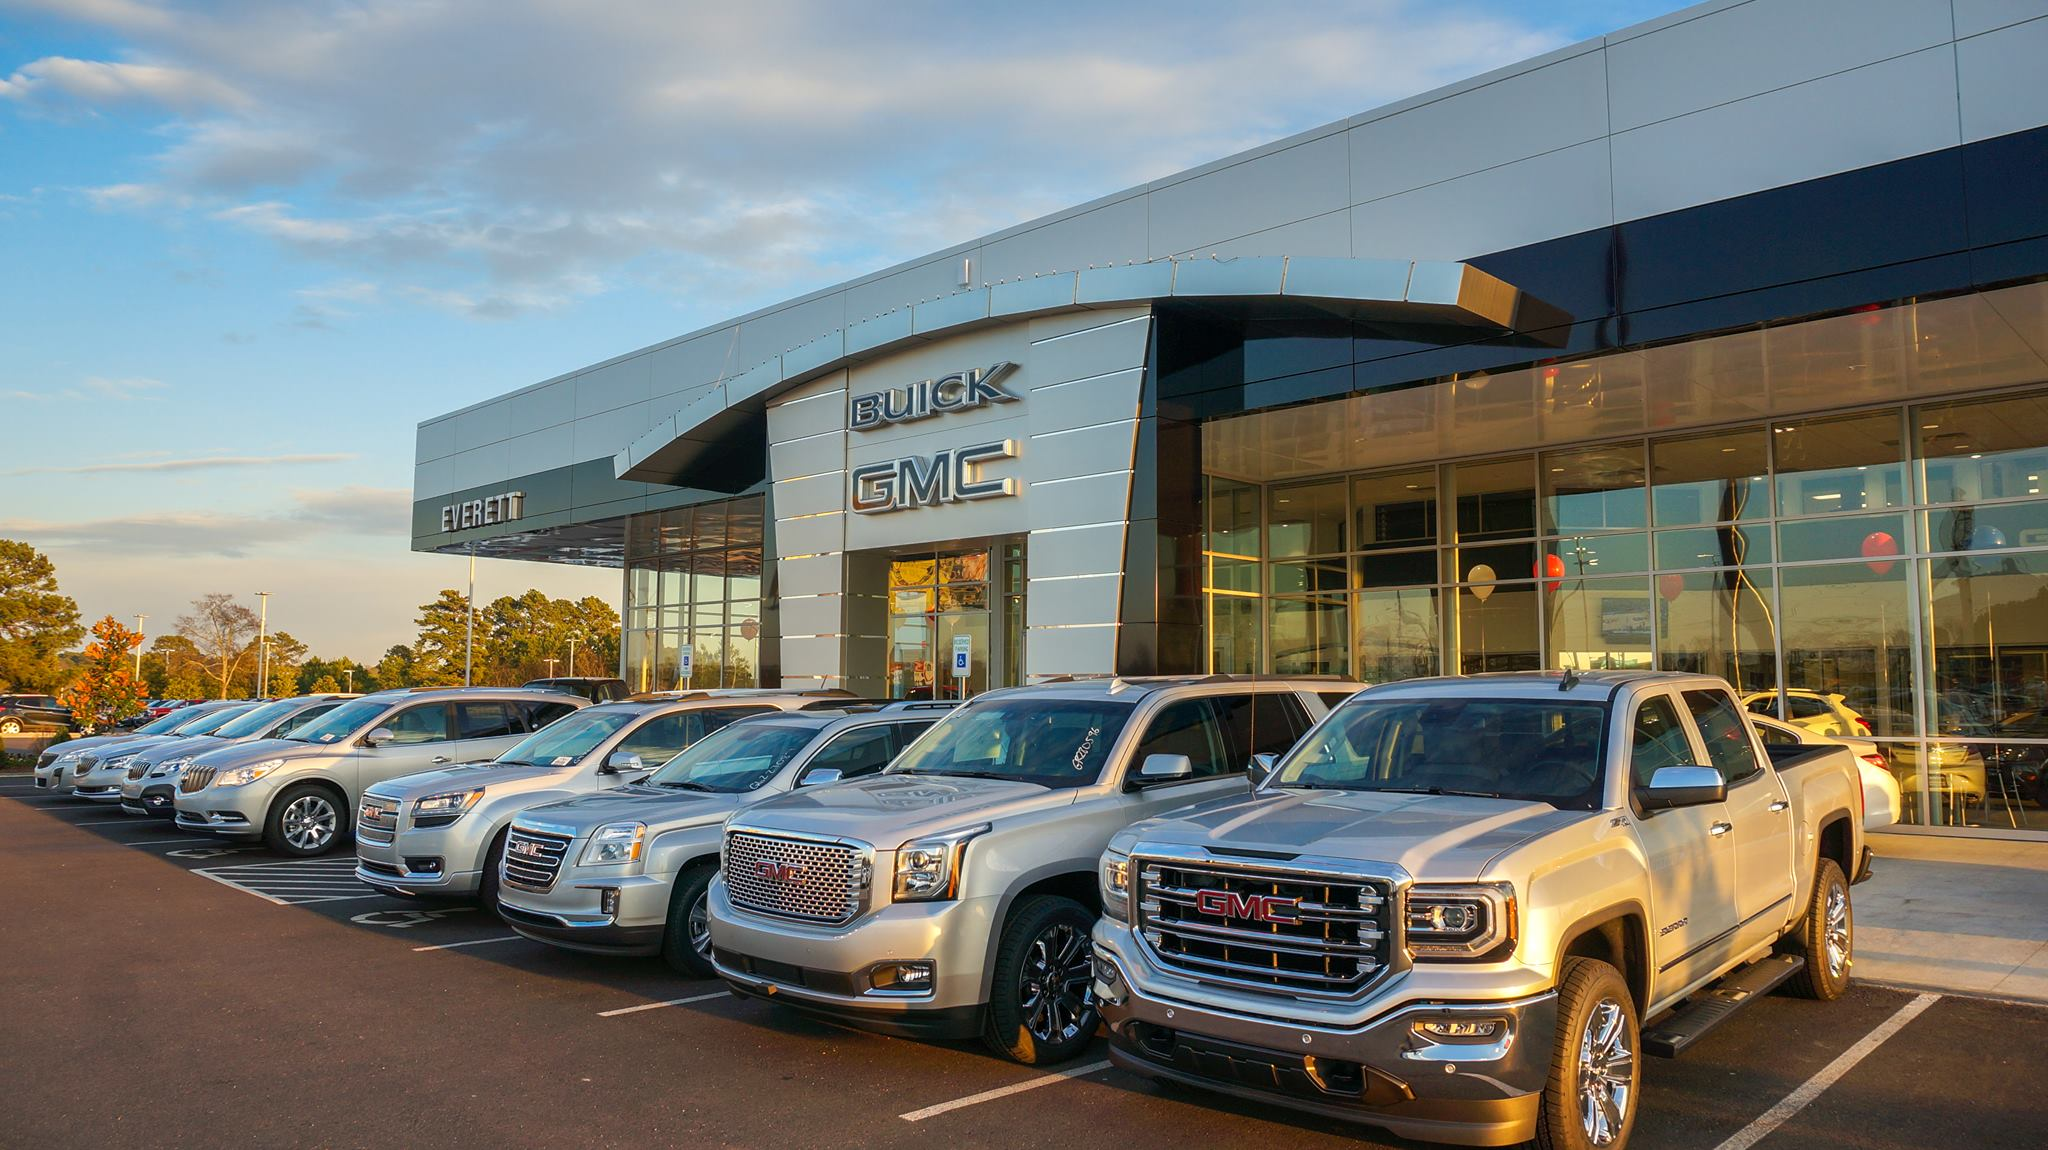 Gmc Dealers In Arkansas >> Everett Buick Gmc Makes Automotive History